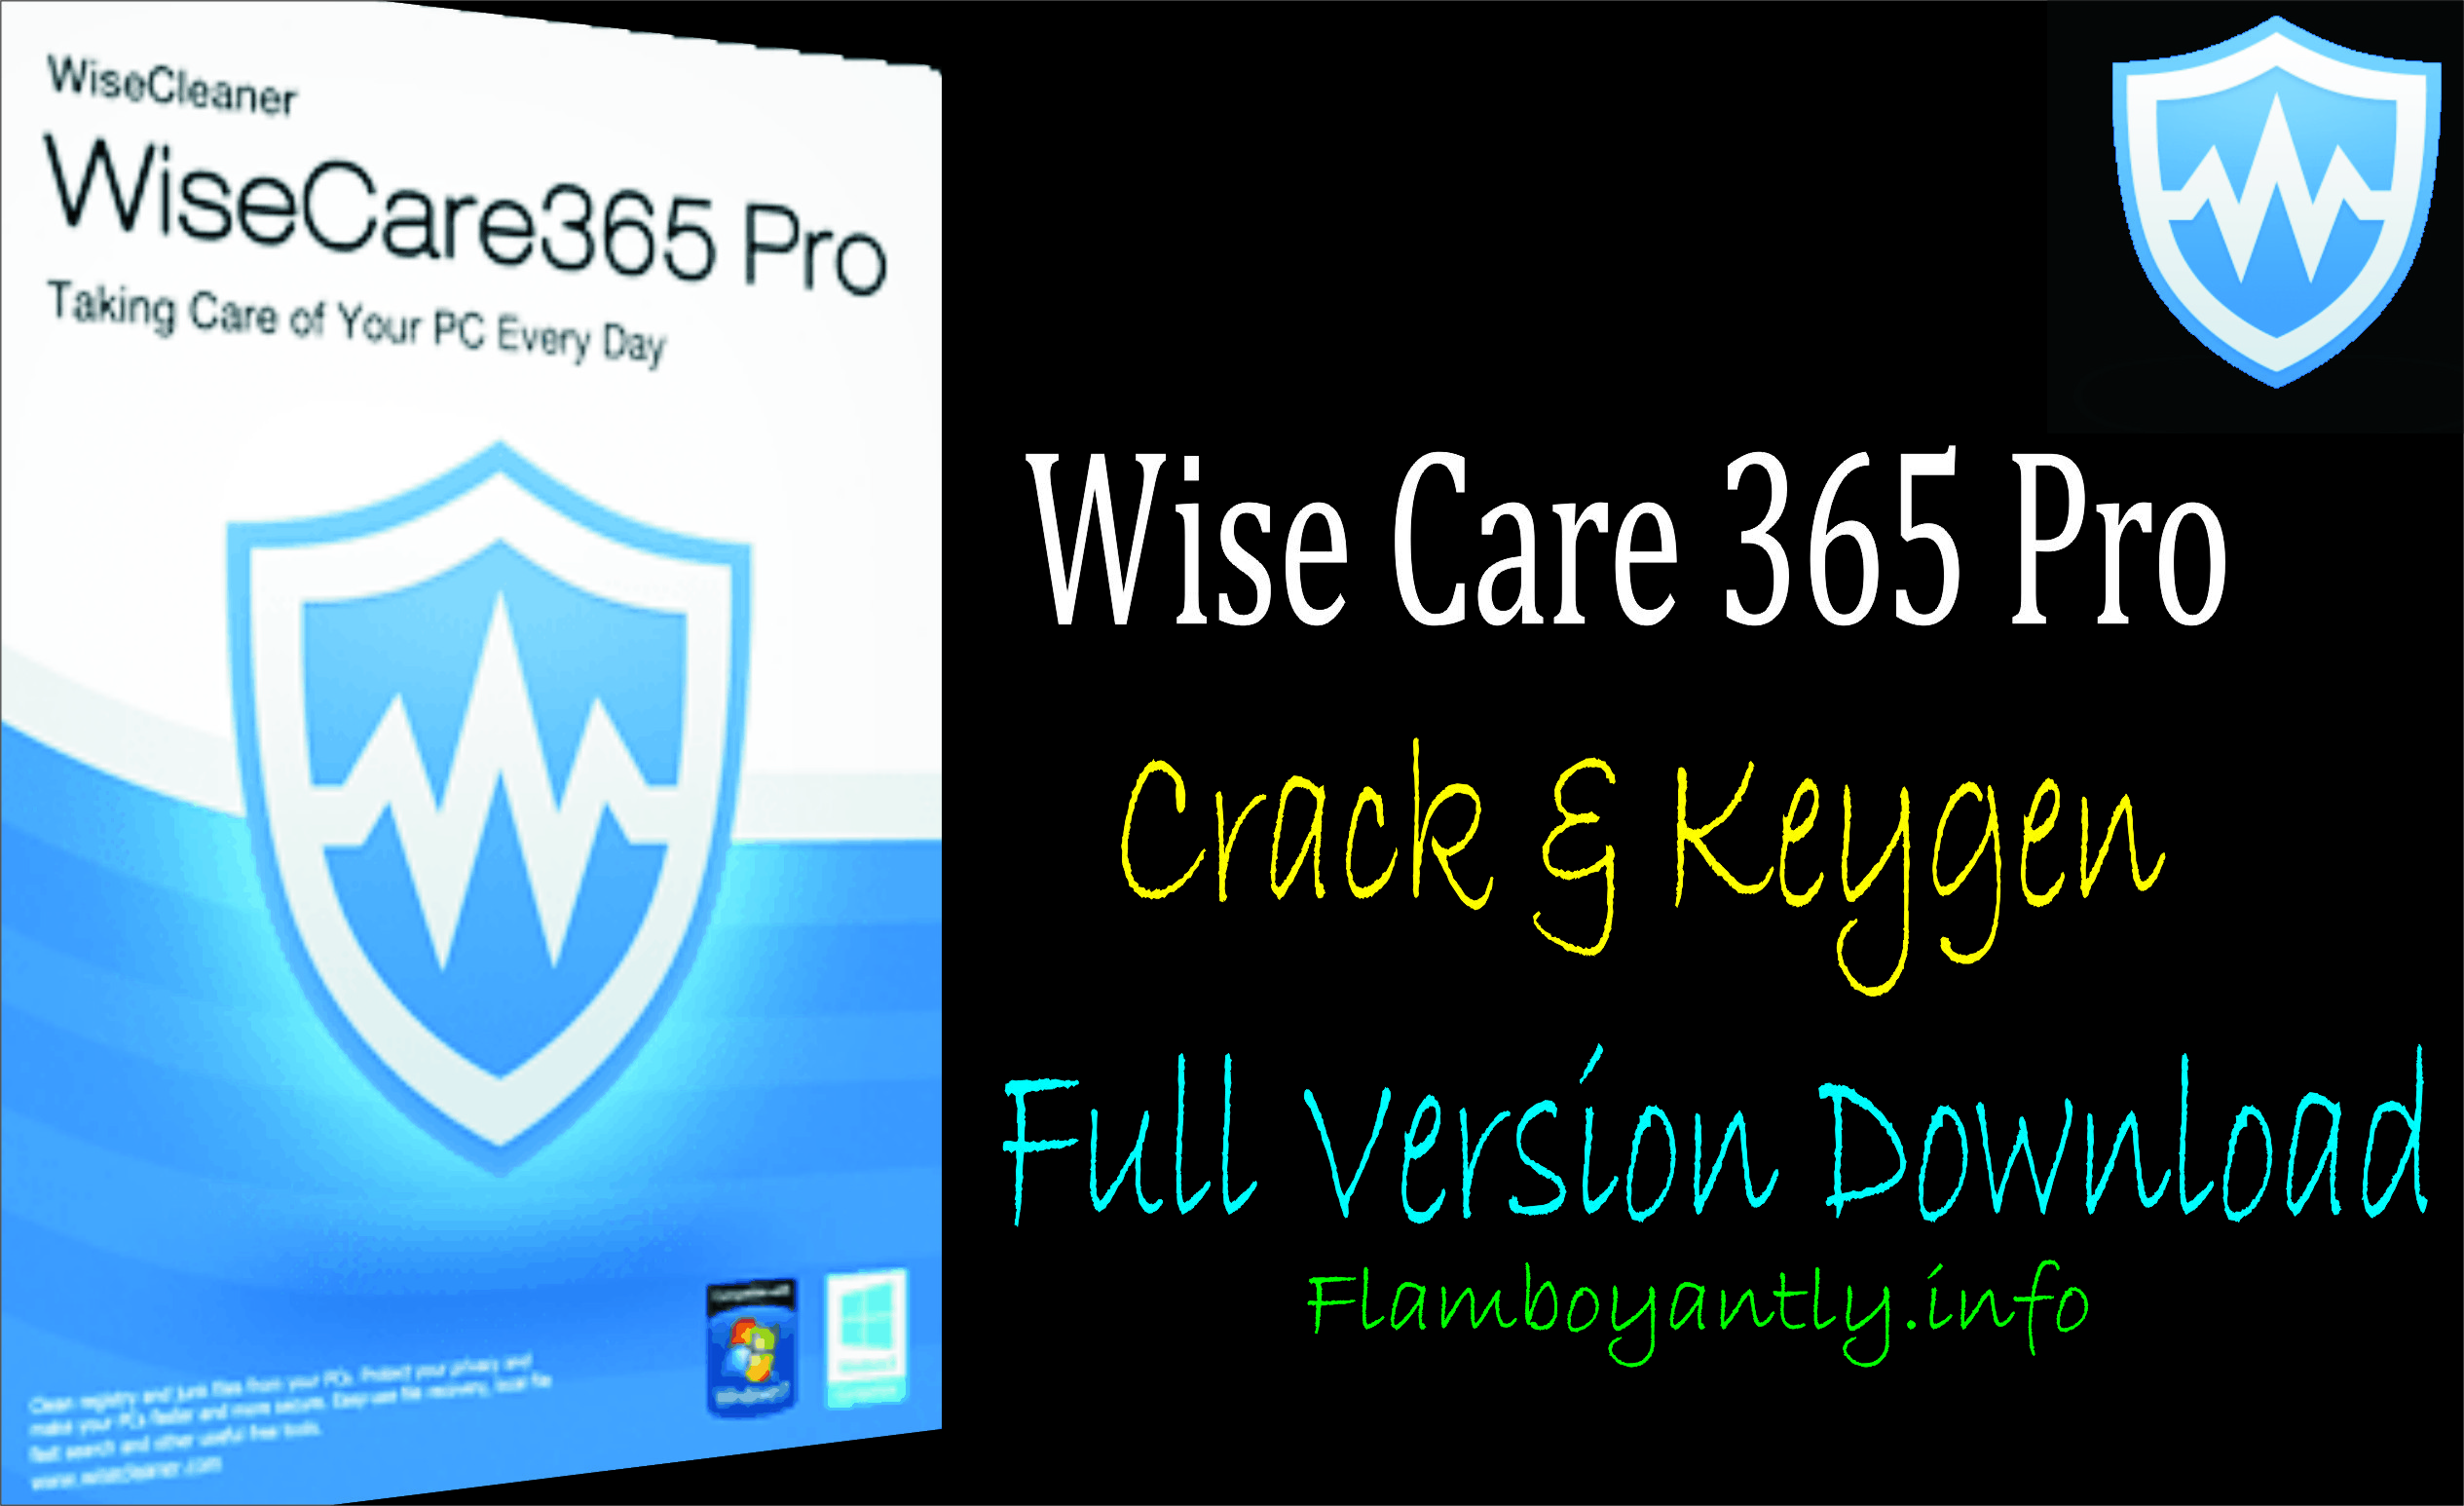 Wise Care 365 Pro Crack & Keygen Full Version Download